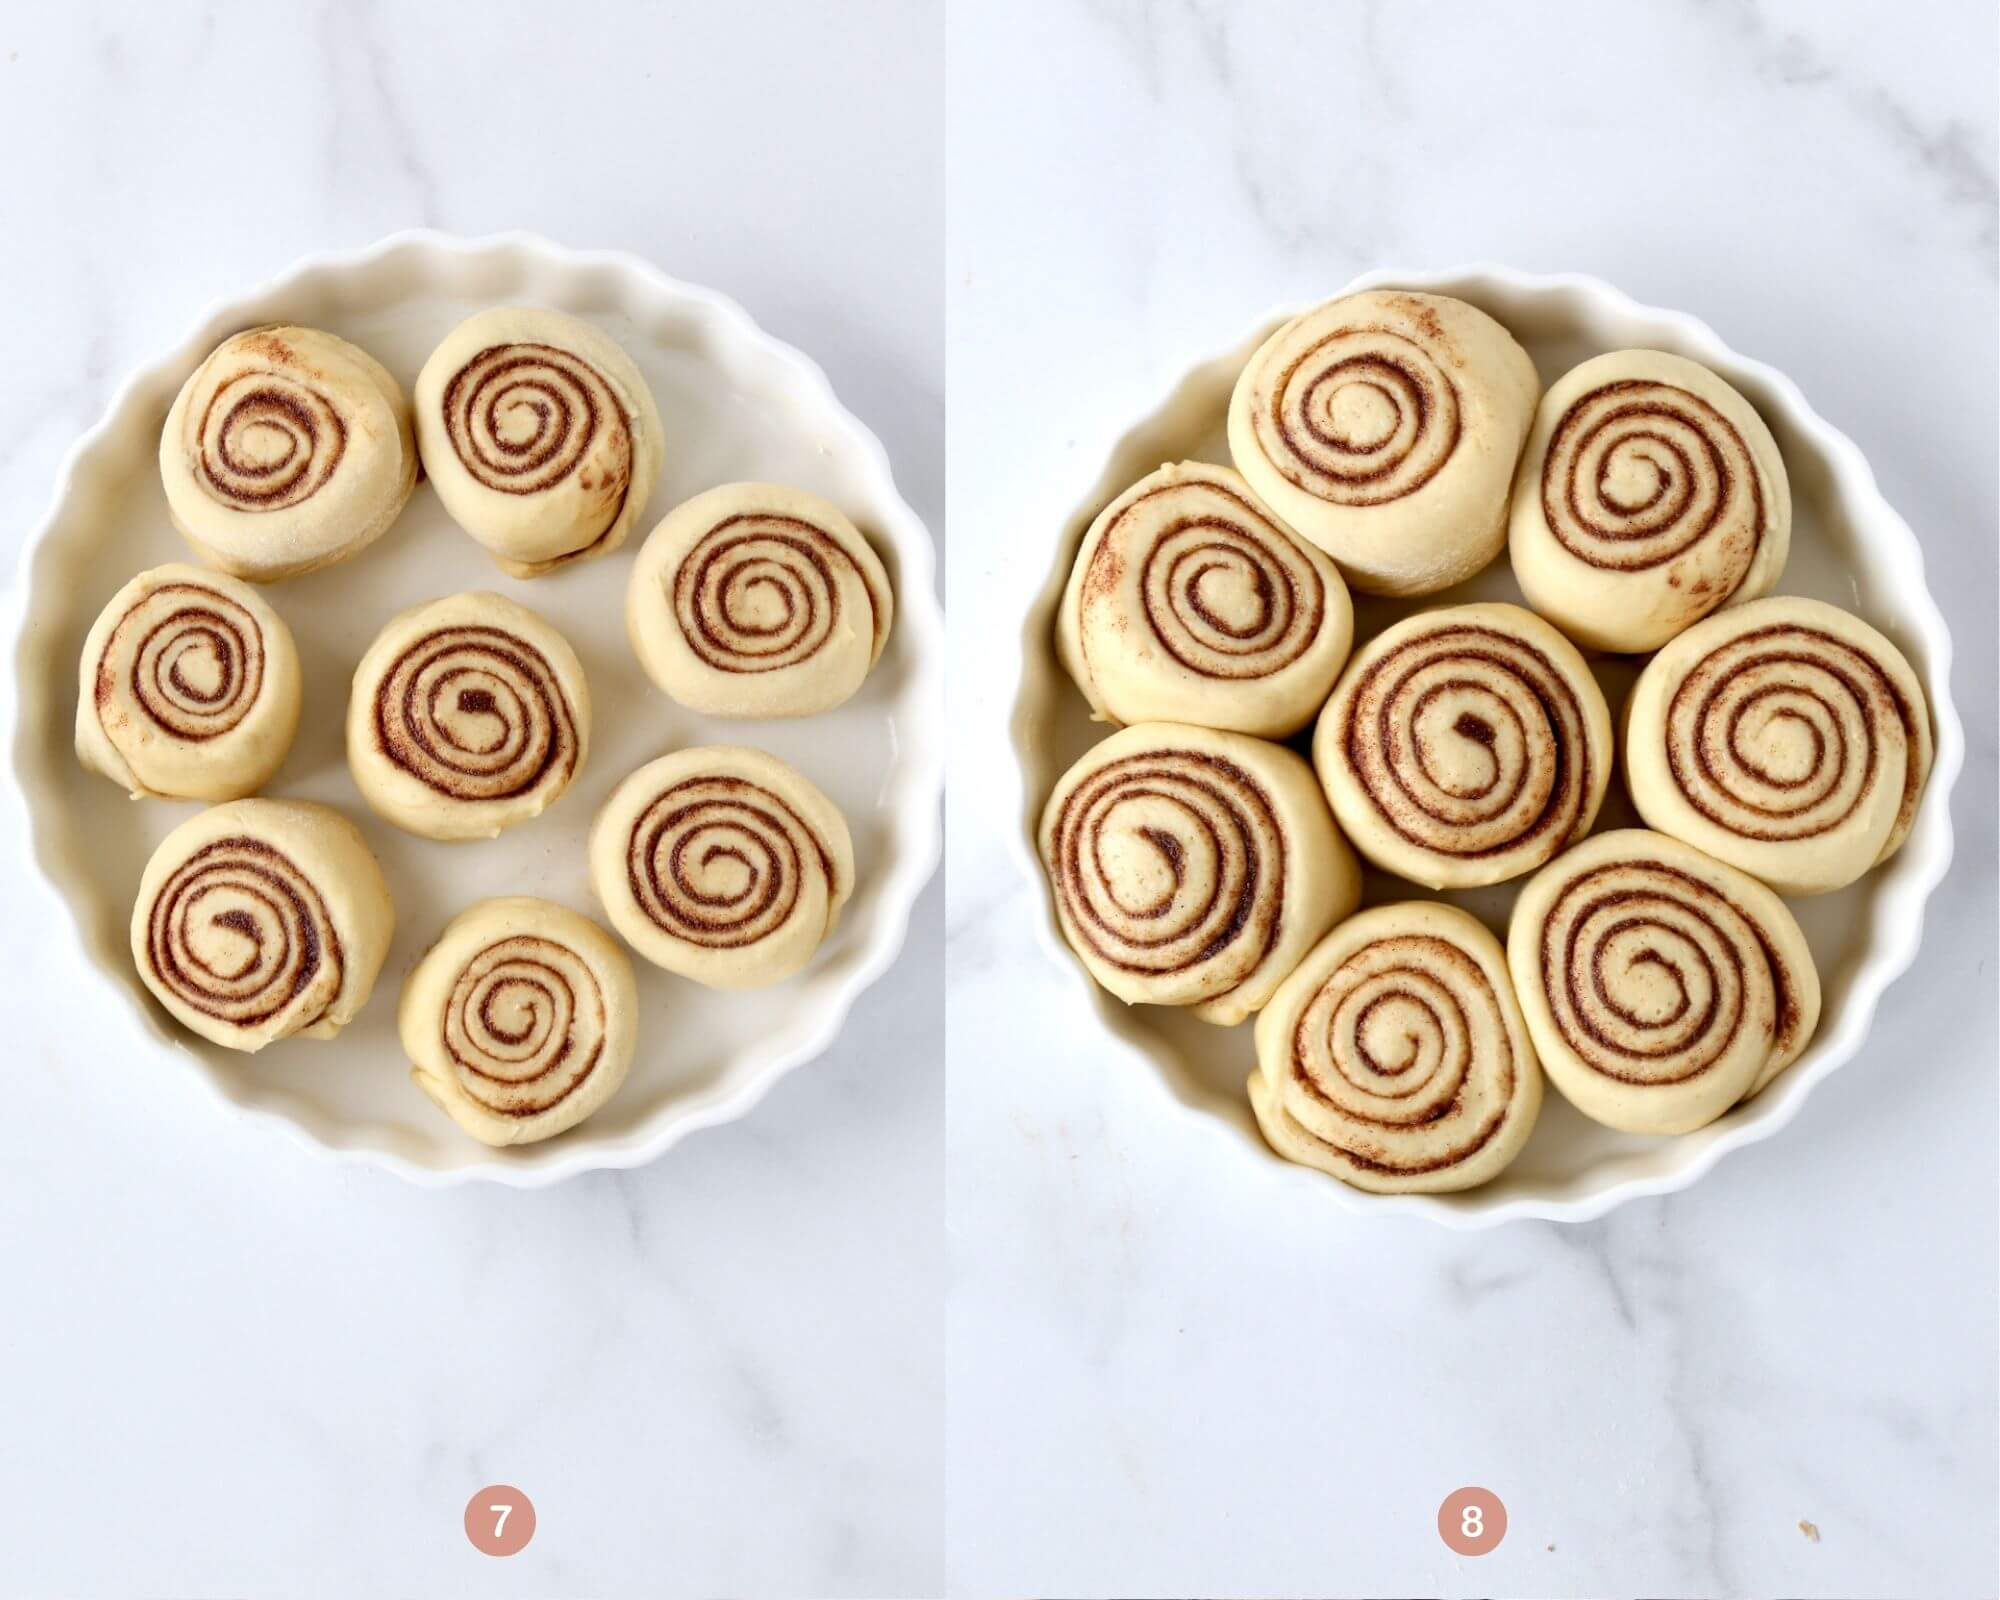 cinnamon rolls proofing in a baking dish